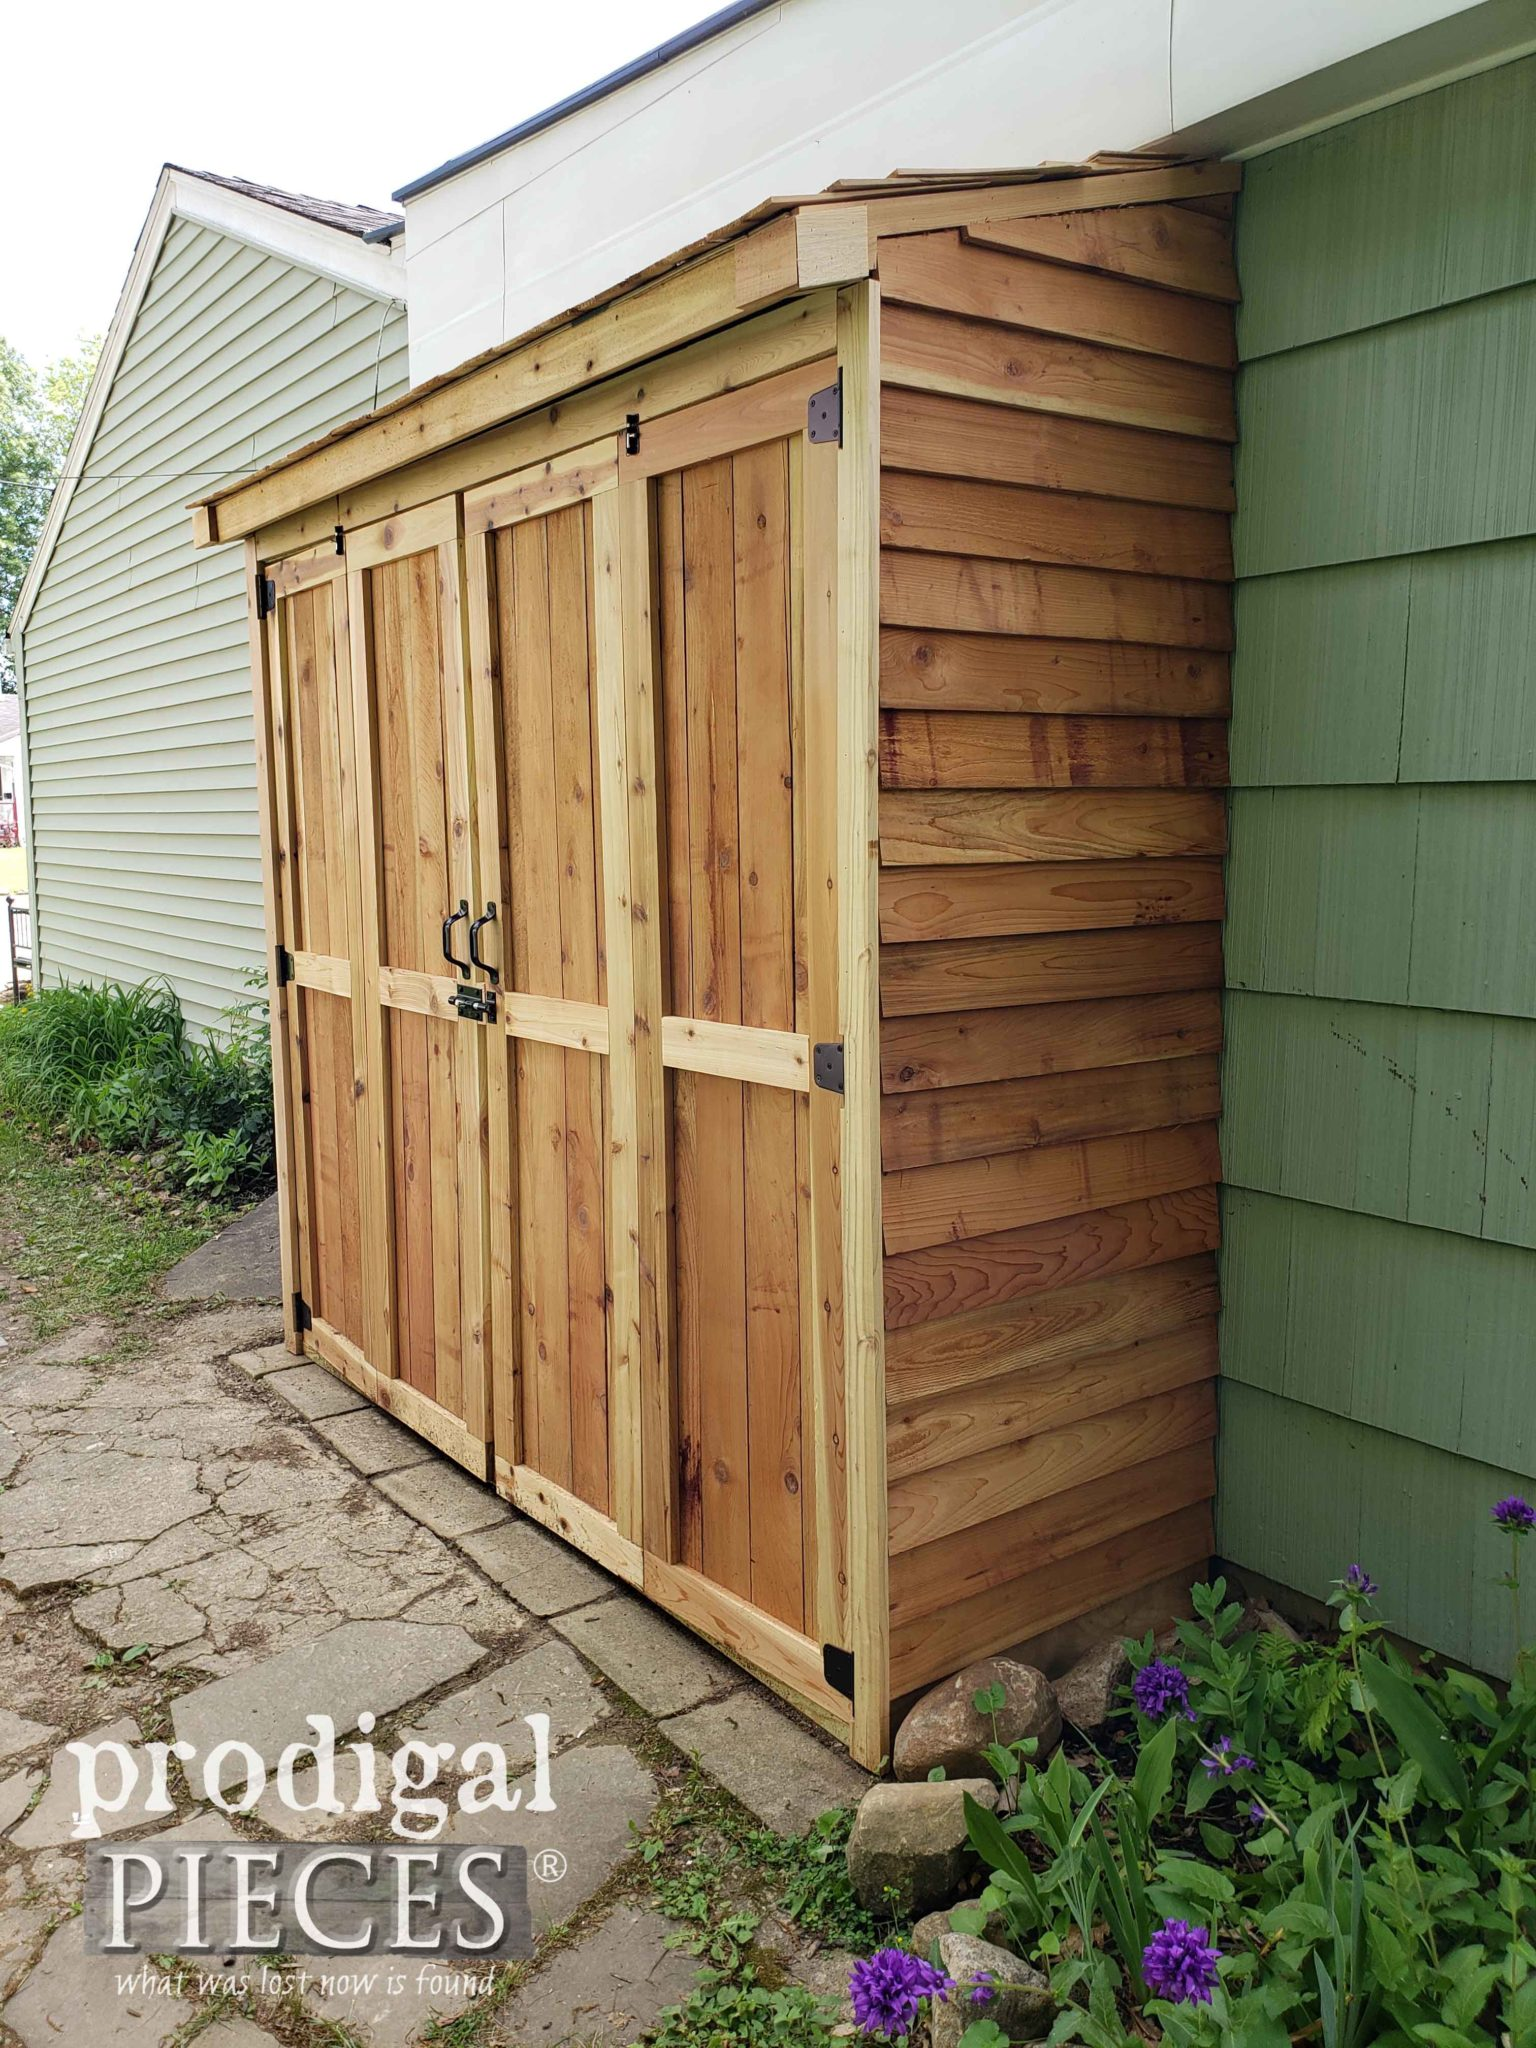 DIY Cedar Garden Shed on a Budget by Larissa of Prodigal Pieces | prodigalpieces.com #prodigalpieces #diy #home #garden